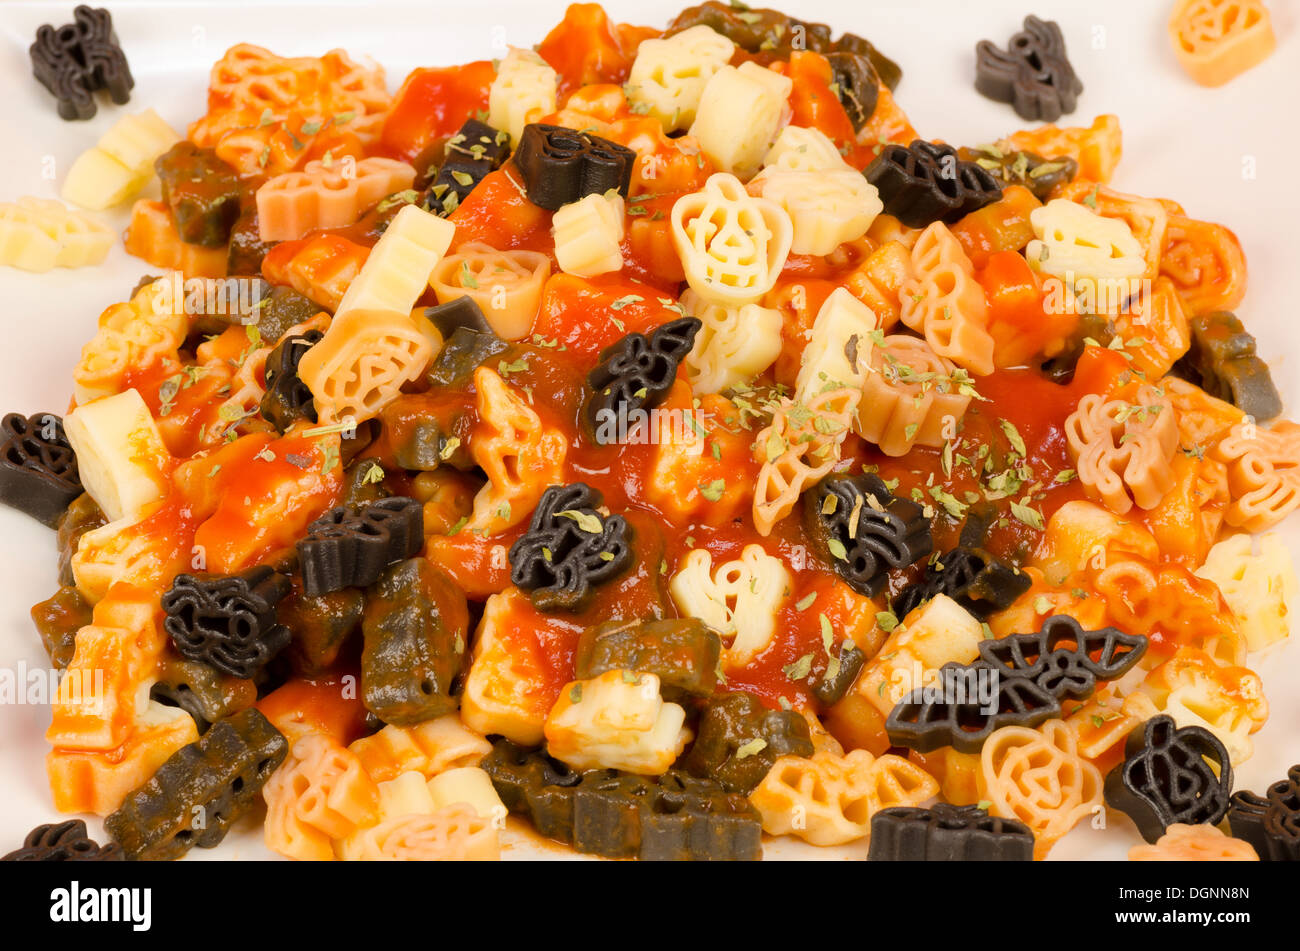 Spooky pasta, a plate of Halloween party kid food - Stock Image